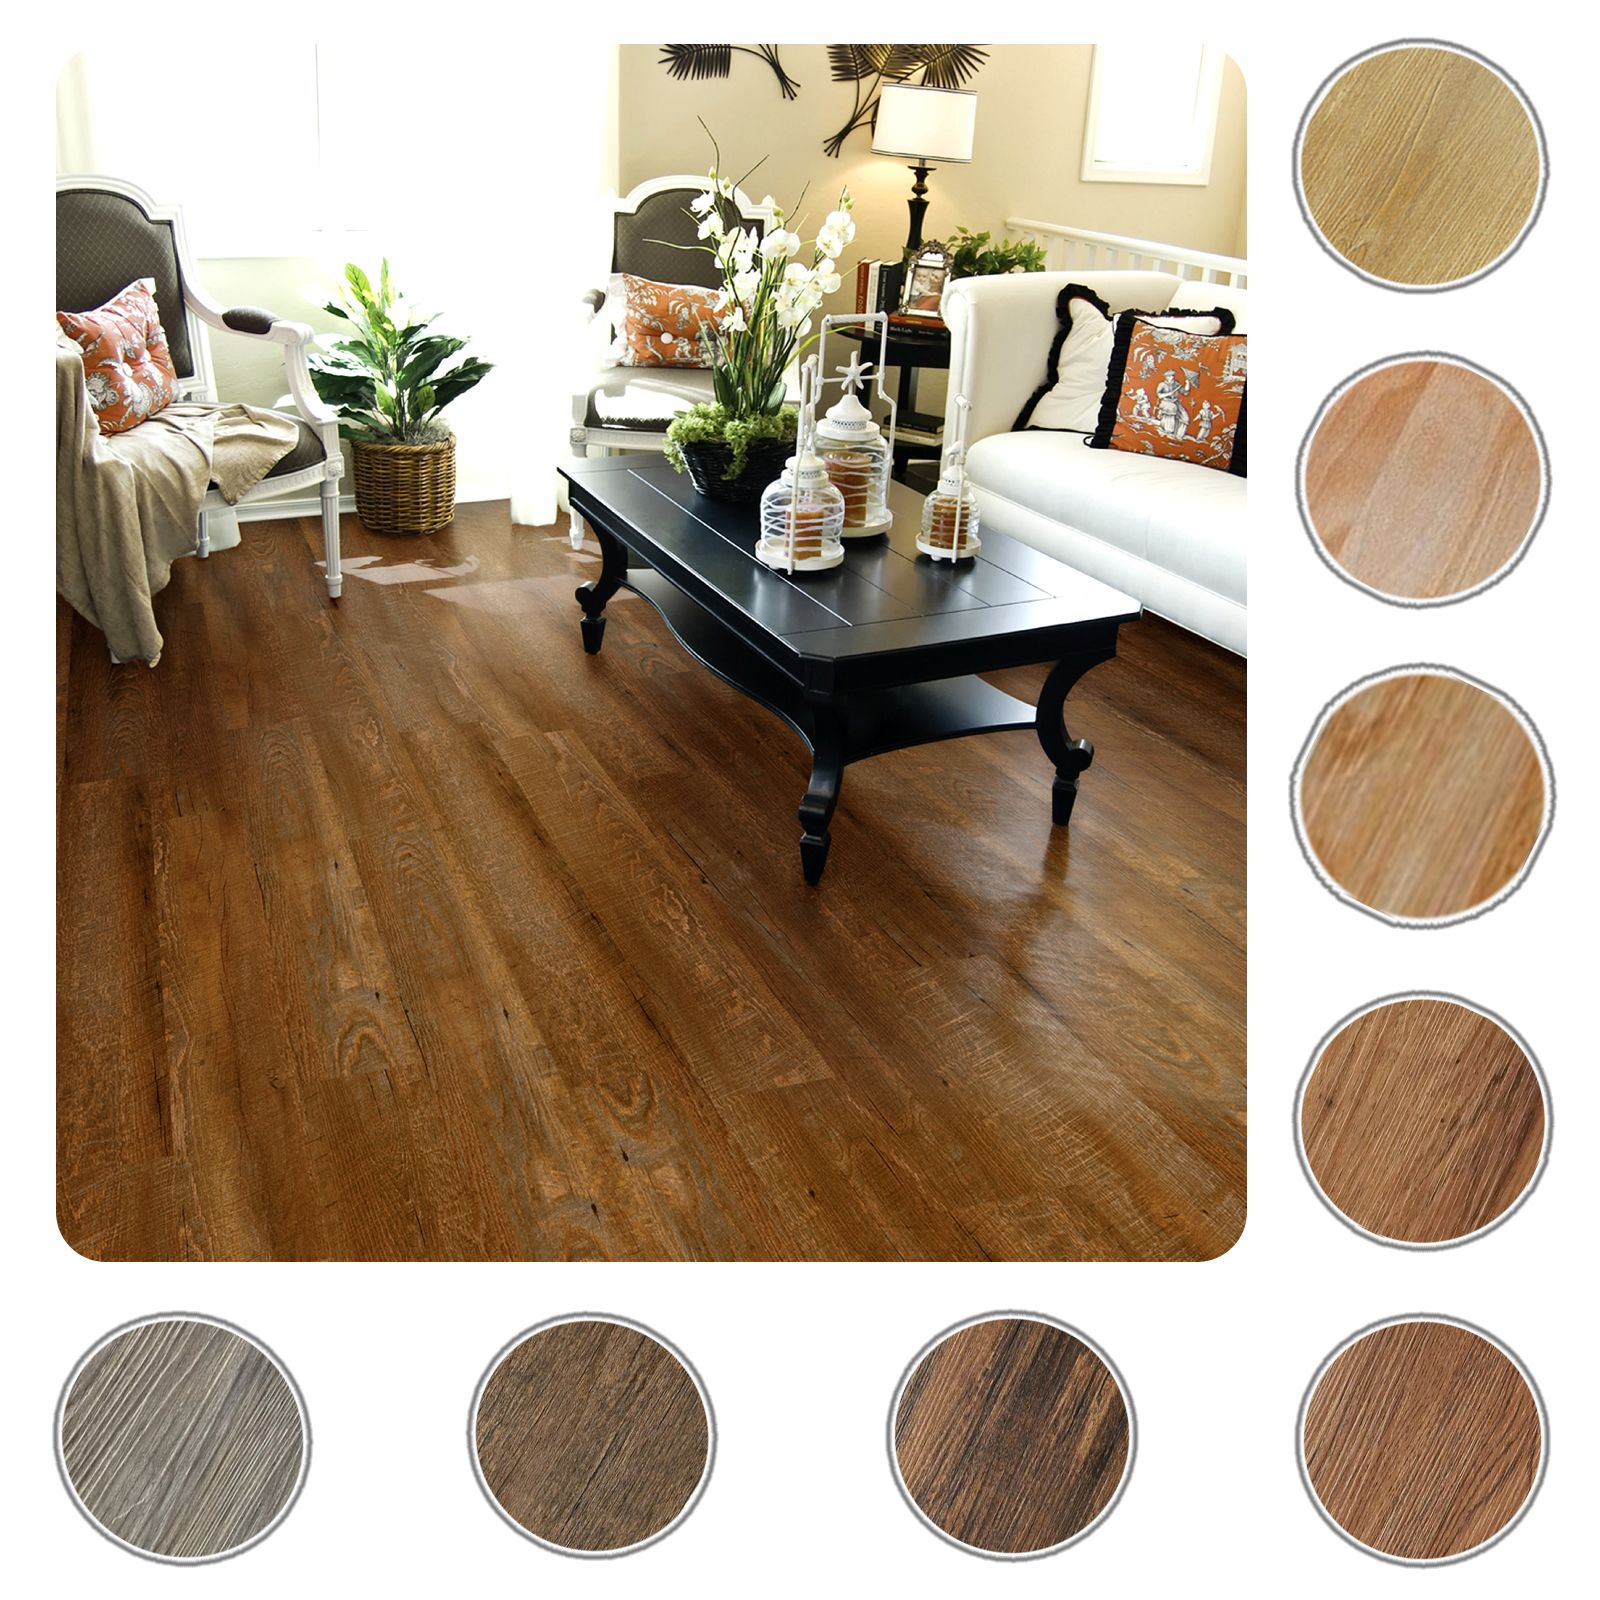 10 pack self adhesive vinyl hardwood wood peel n stick floor planks with images vinyl plank on kitchen remodel vinyl flooring id=99965